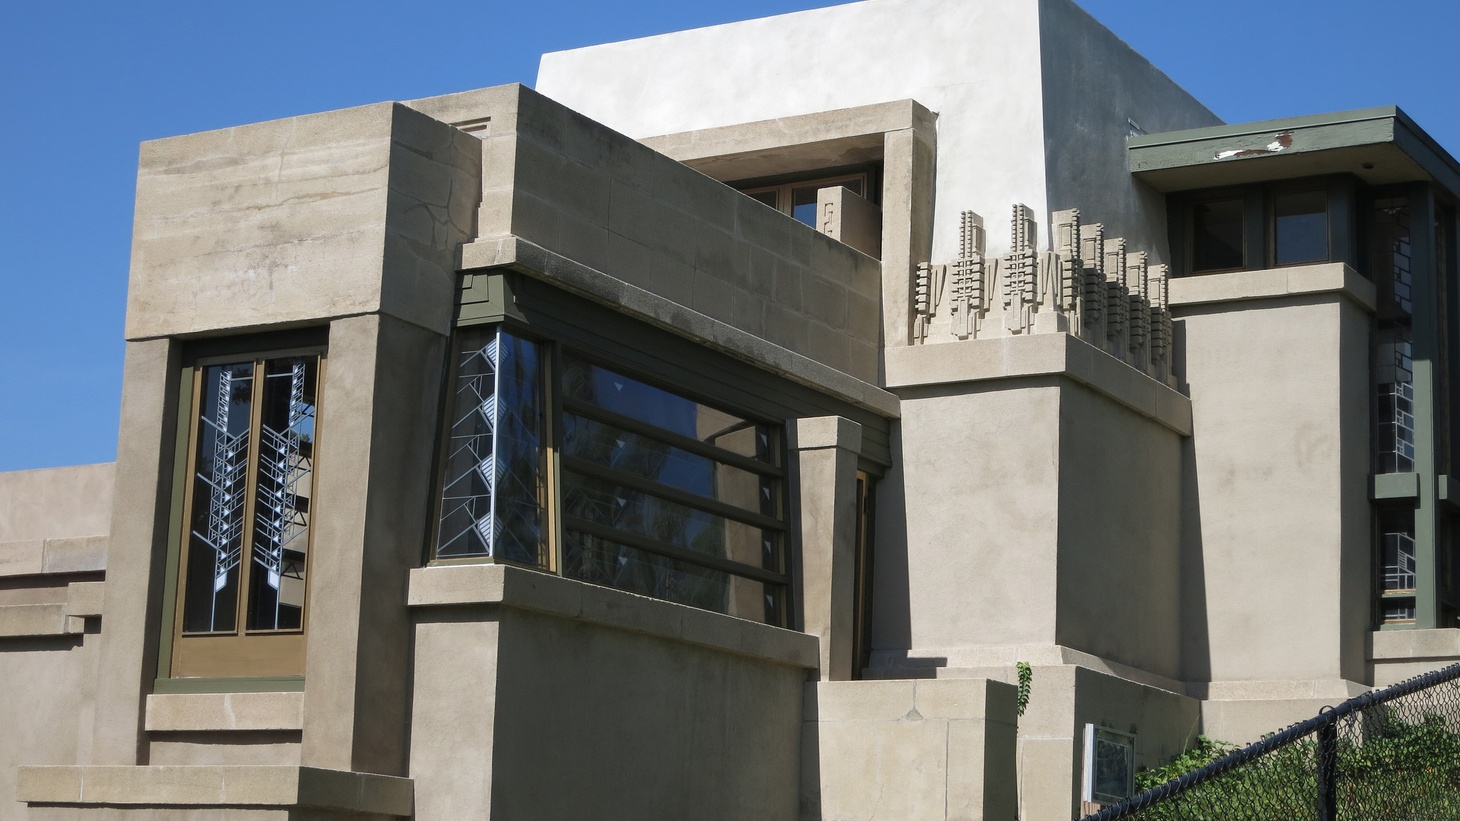 """Celebrated architect Frank Lloyd Wright was born 150 years ago last week, and the anniversary has been recognized with events and exhibitions. His style of """"organic architecture"""" can be seen in his Los Angeles houses, including the Hollyhock House in Barnsdall Park. Why does this architect still tower in the public imagination?"""